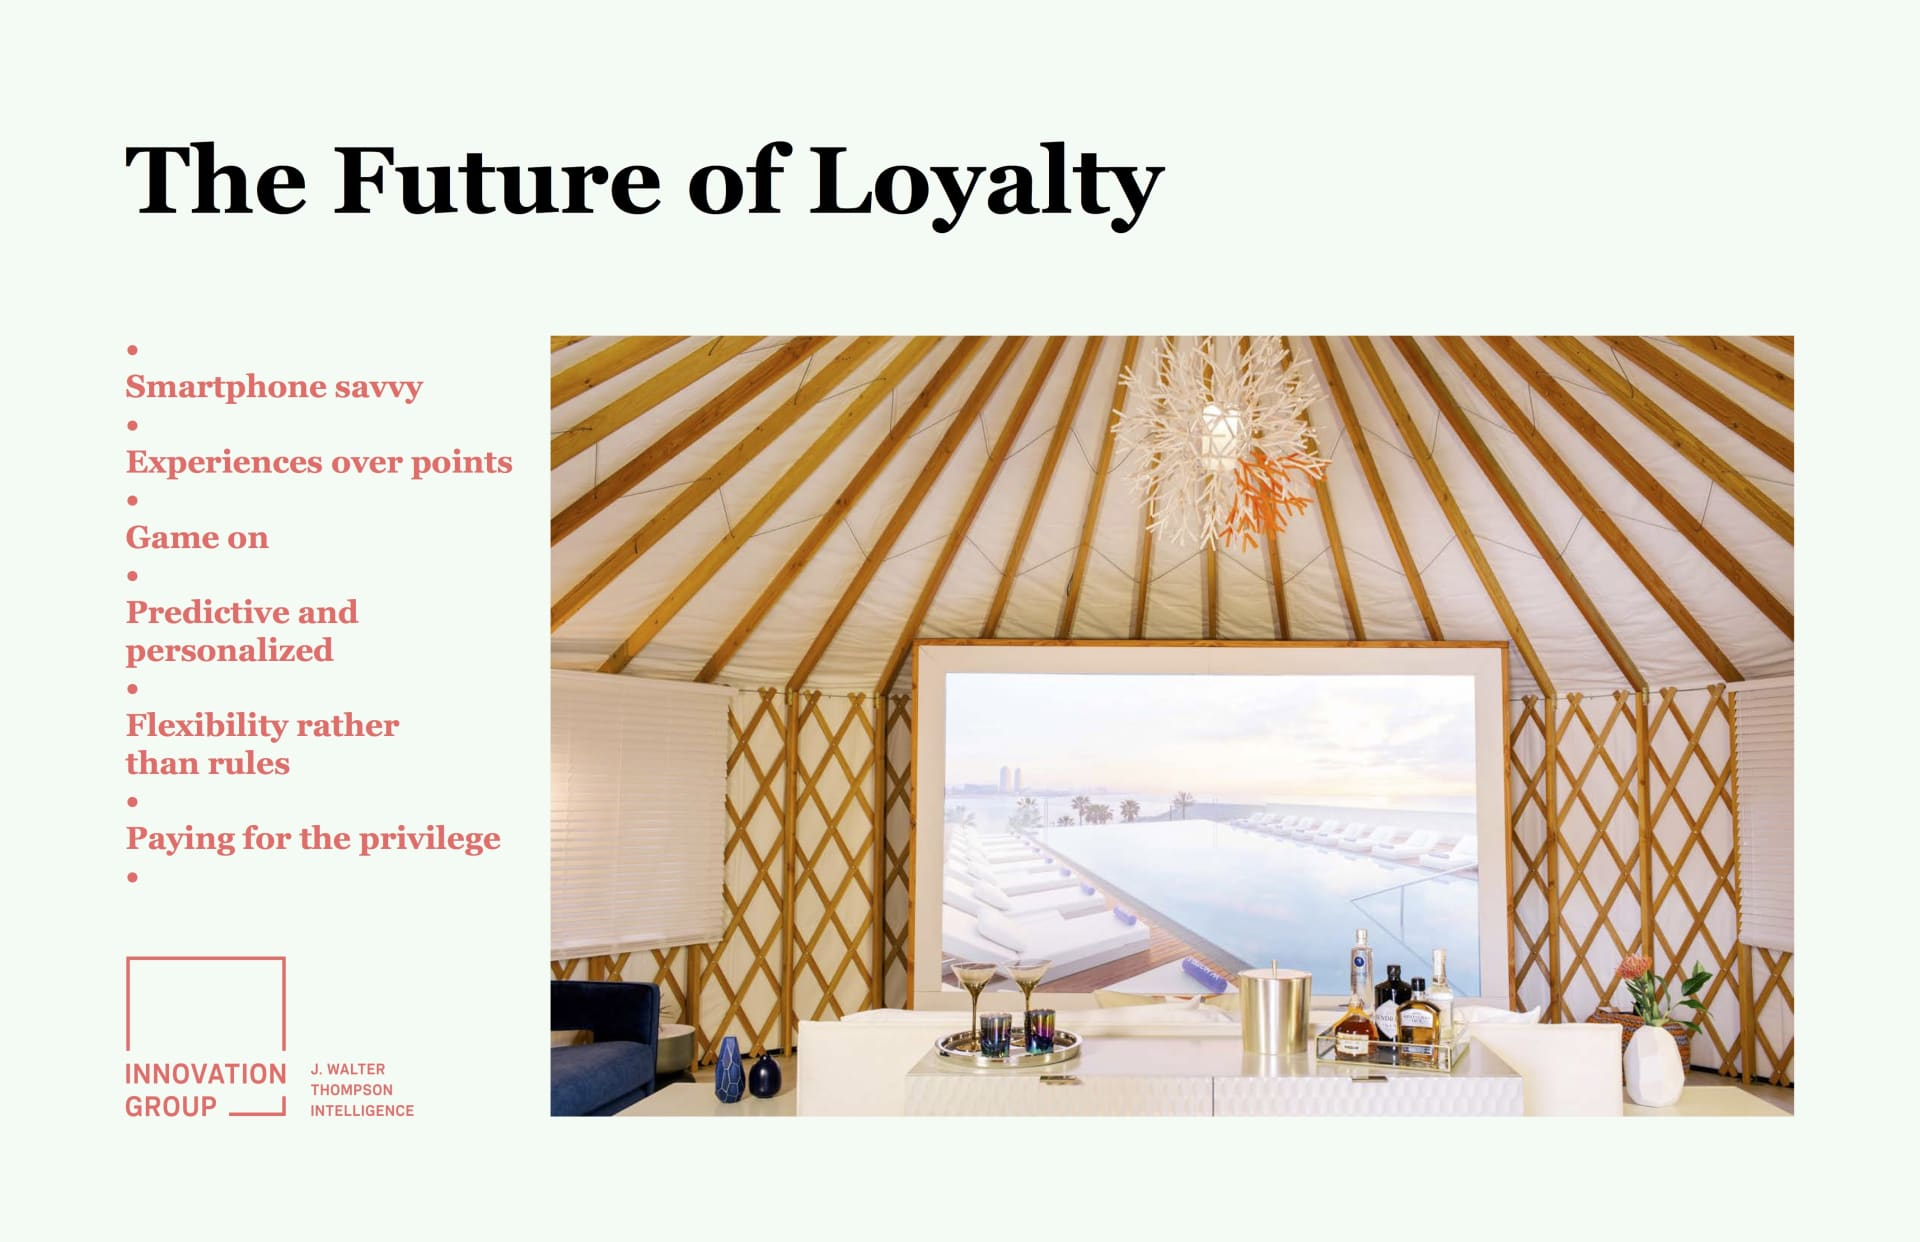 The Future of Loyalty